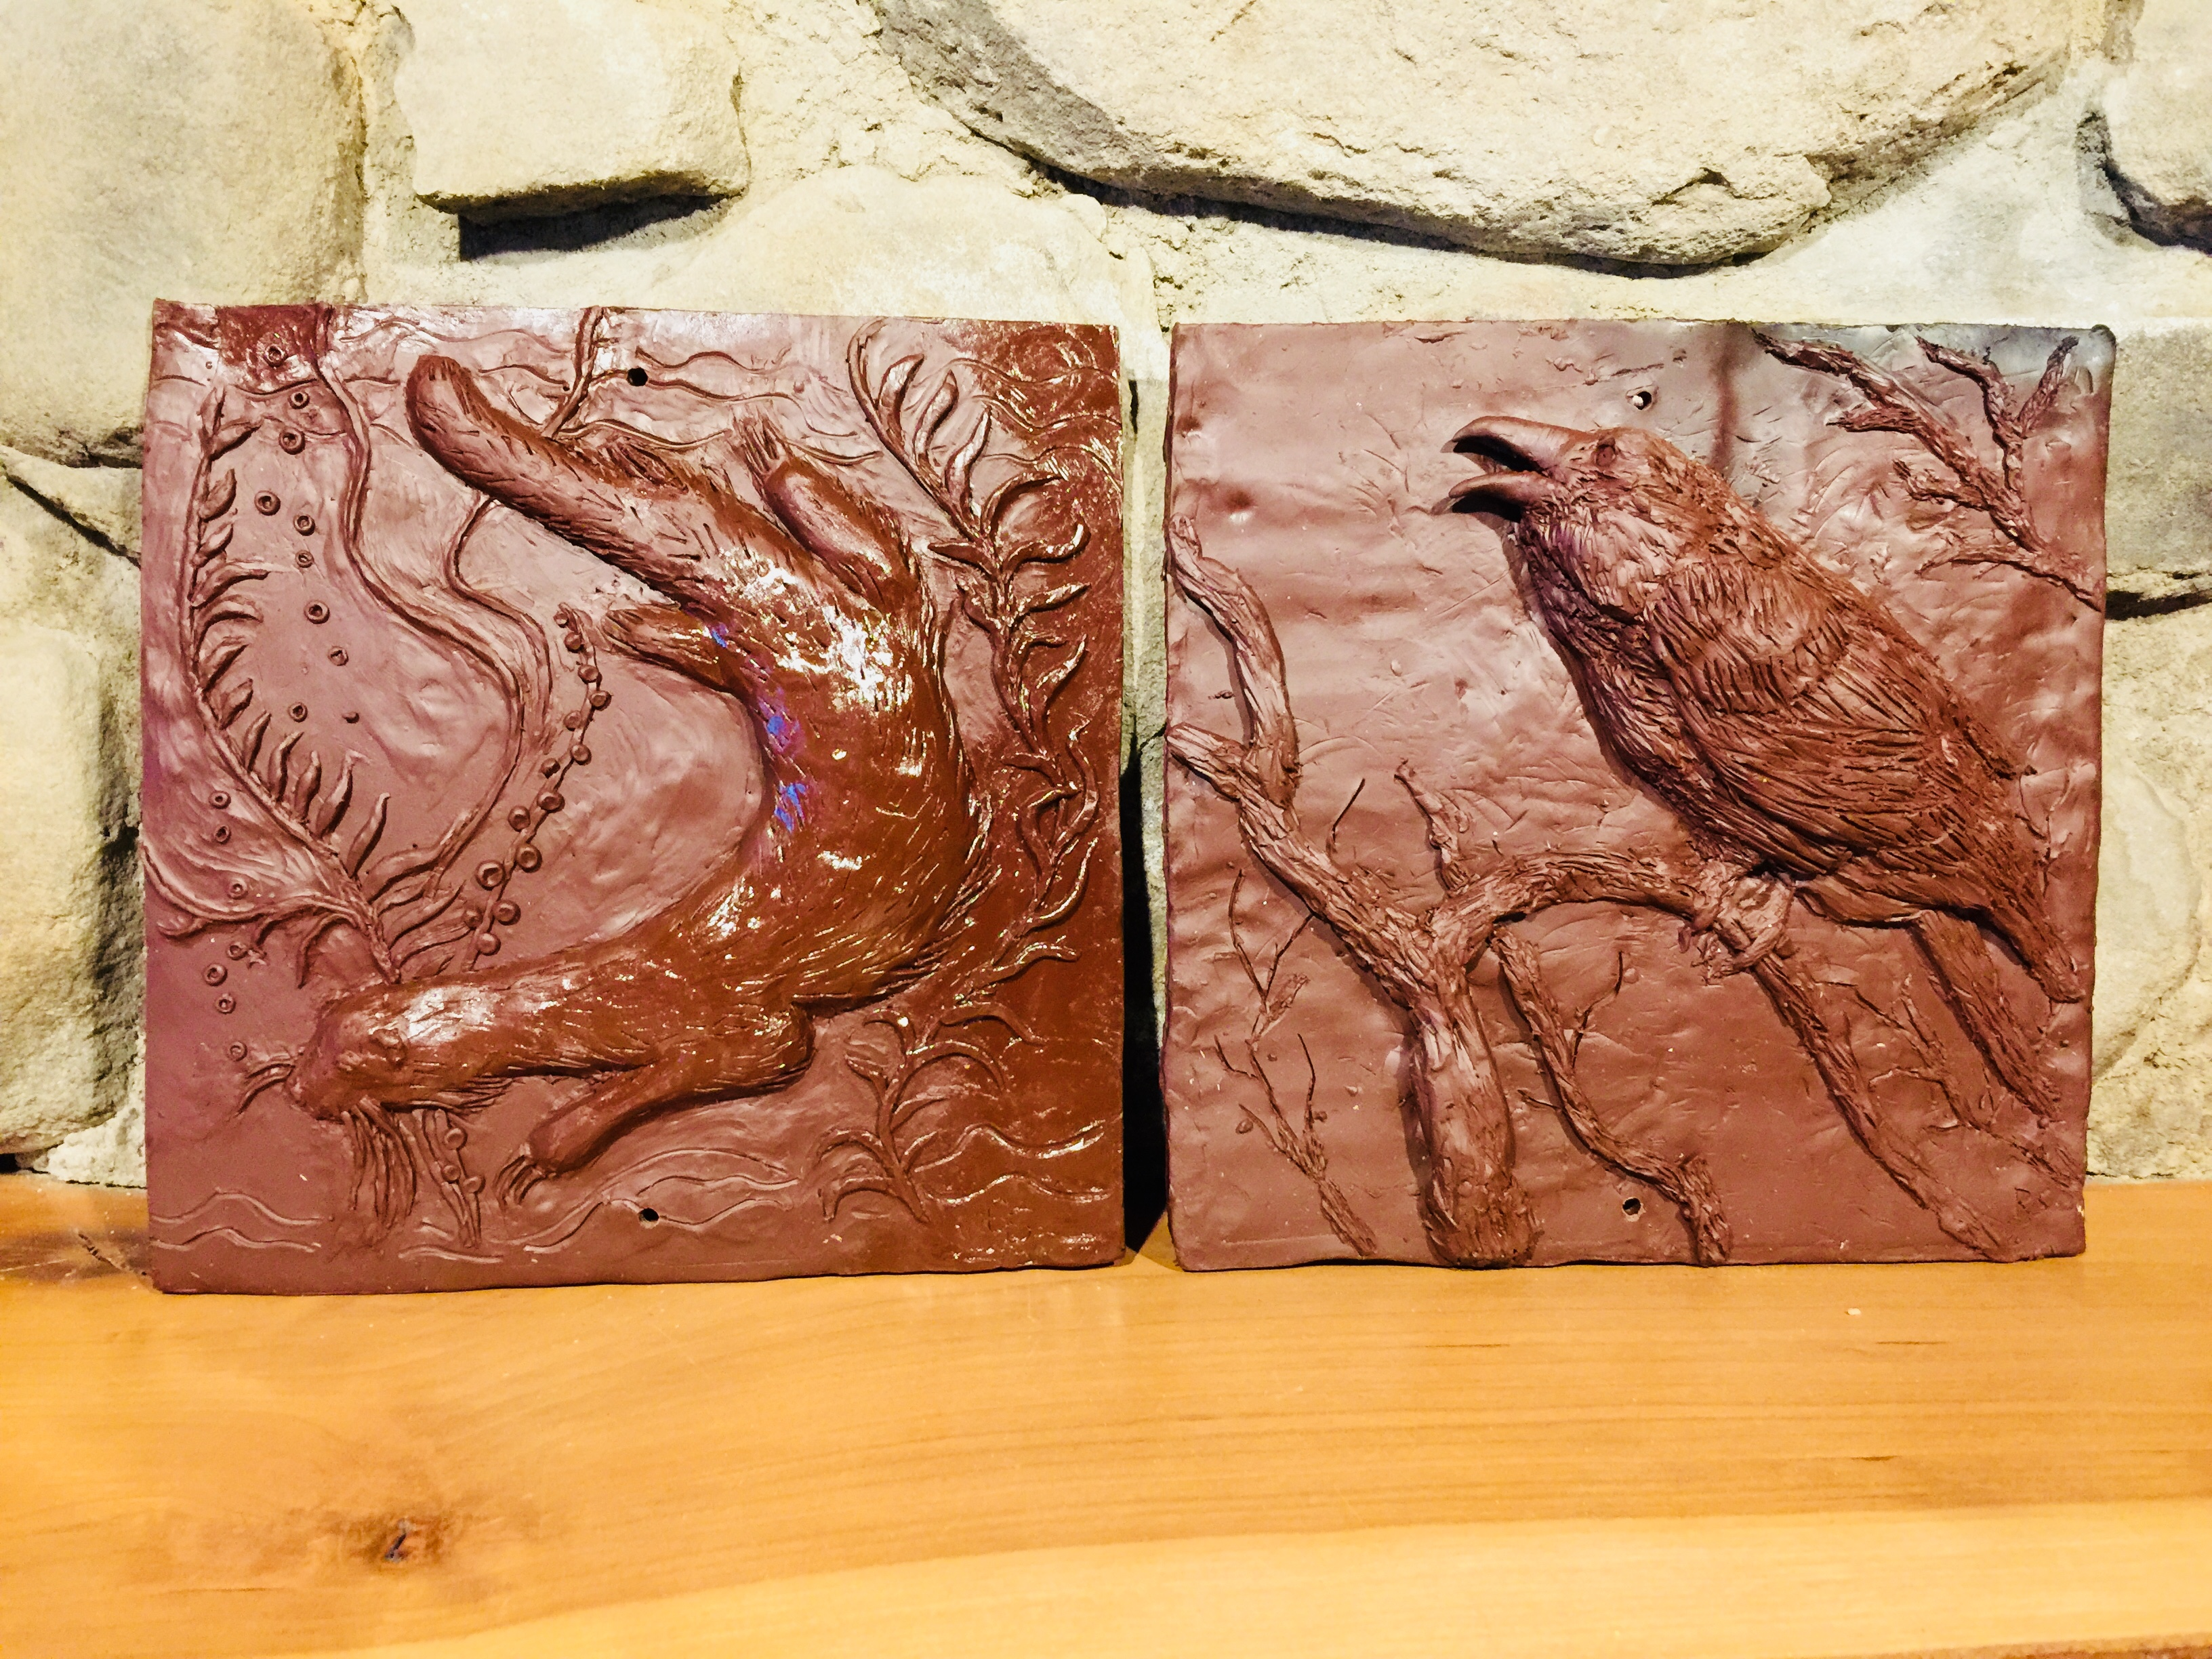 Fireplace Tiles by Sandy and Bob 1:29:2018